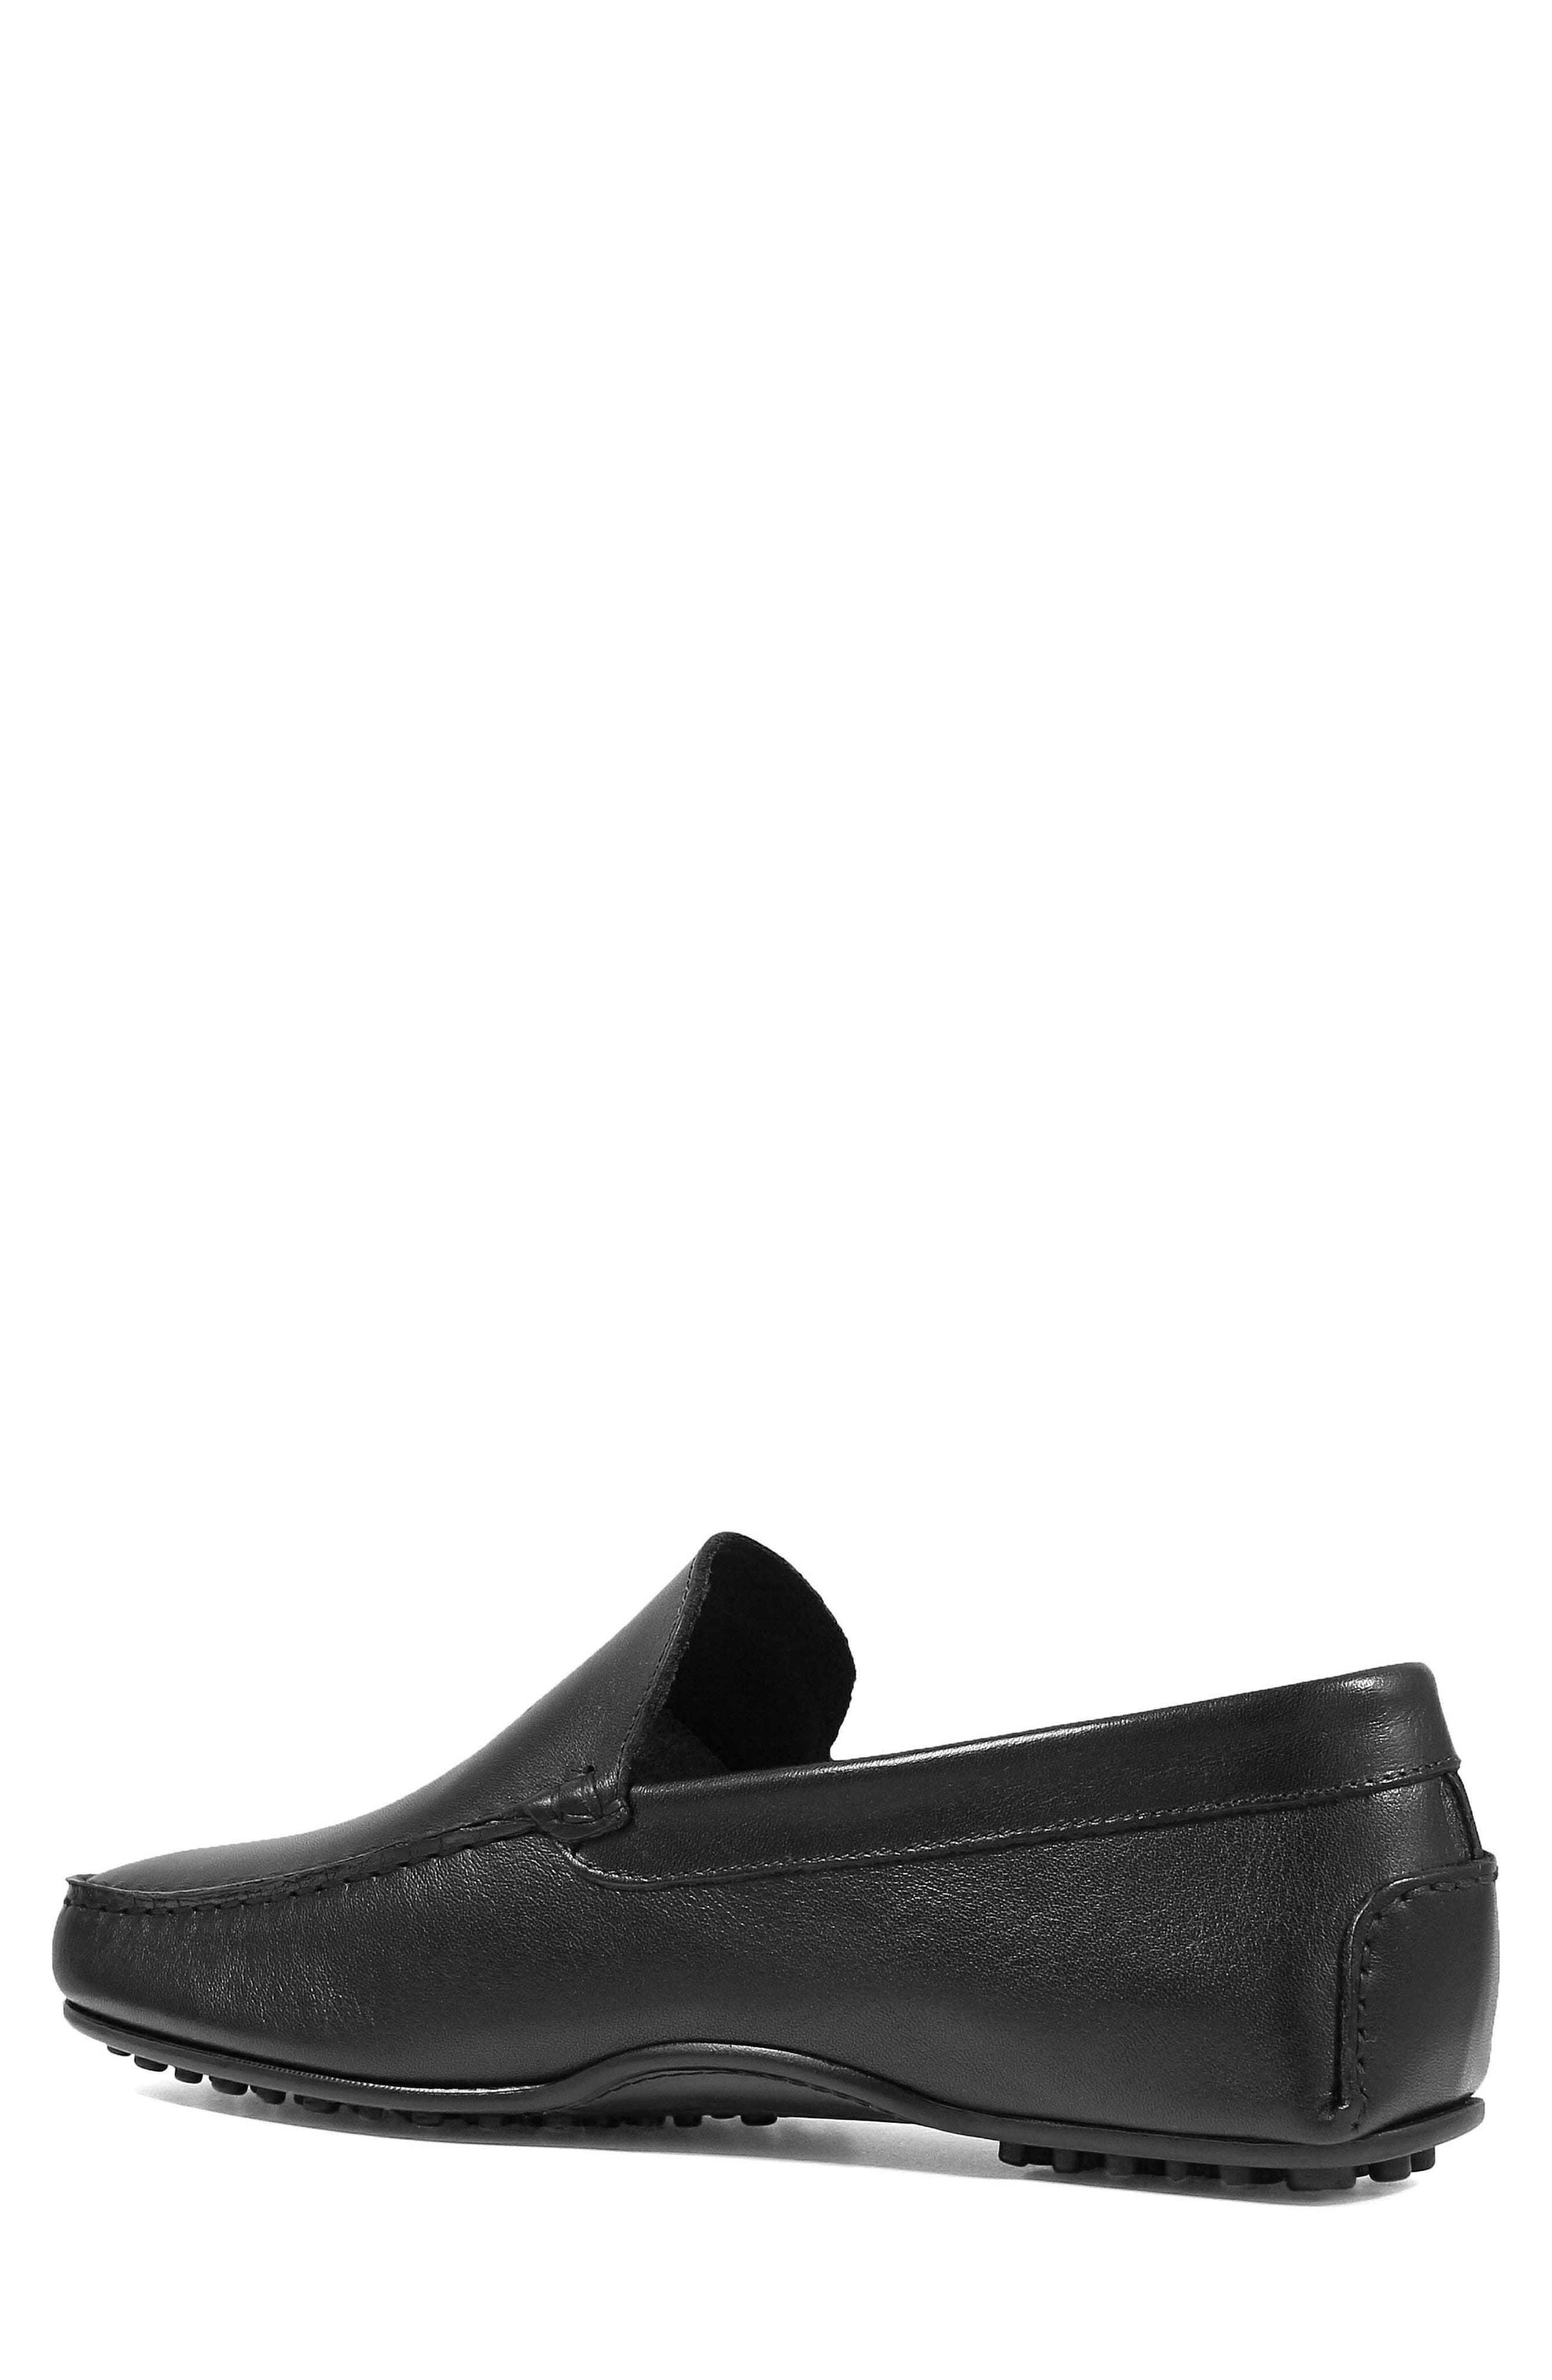 Navono Driving Moccasin,                             Alternate thumbnail 2, color,                             BLACK LEATHER